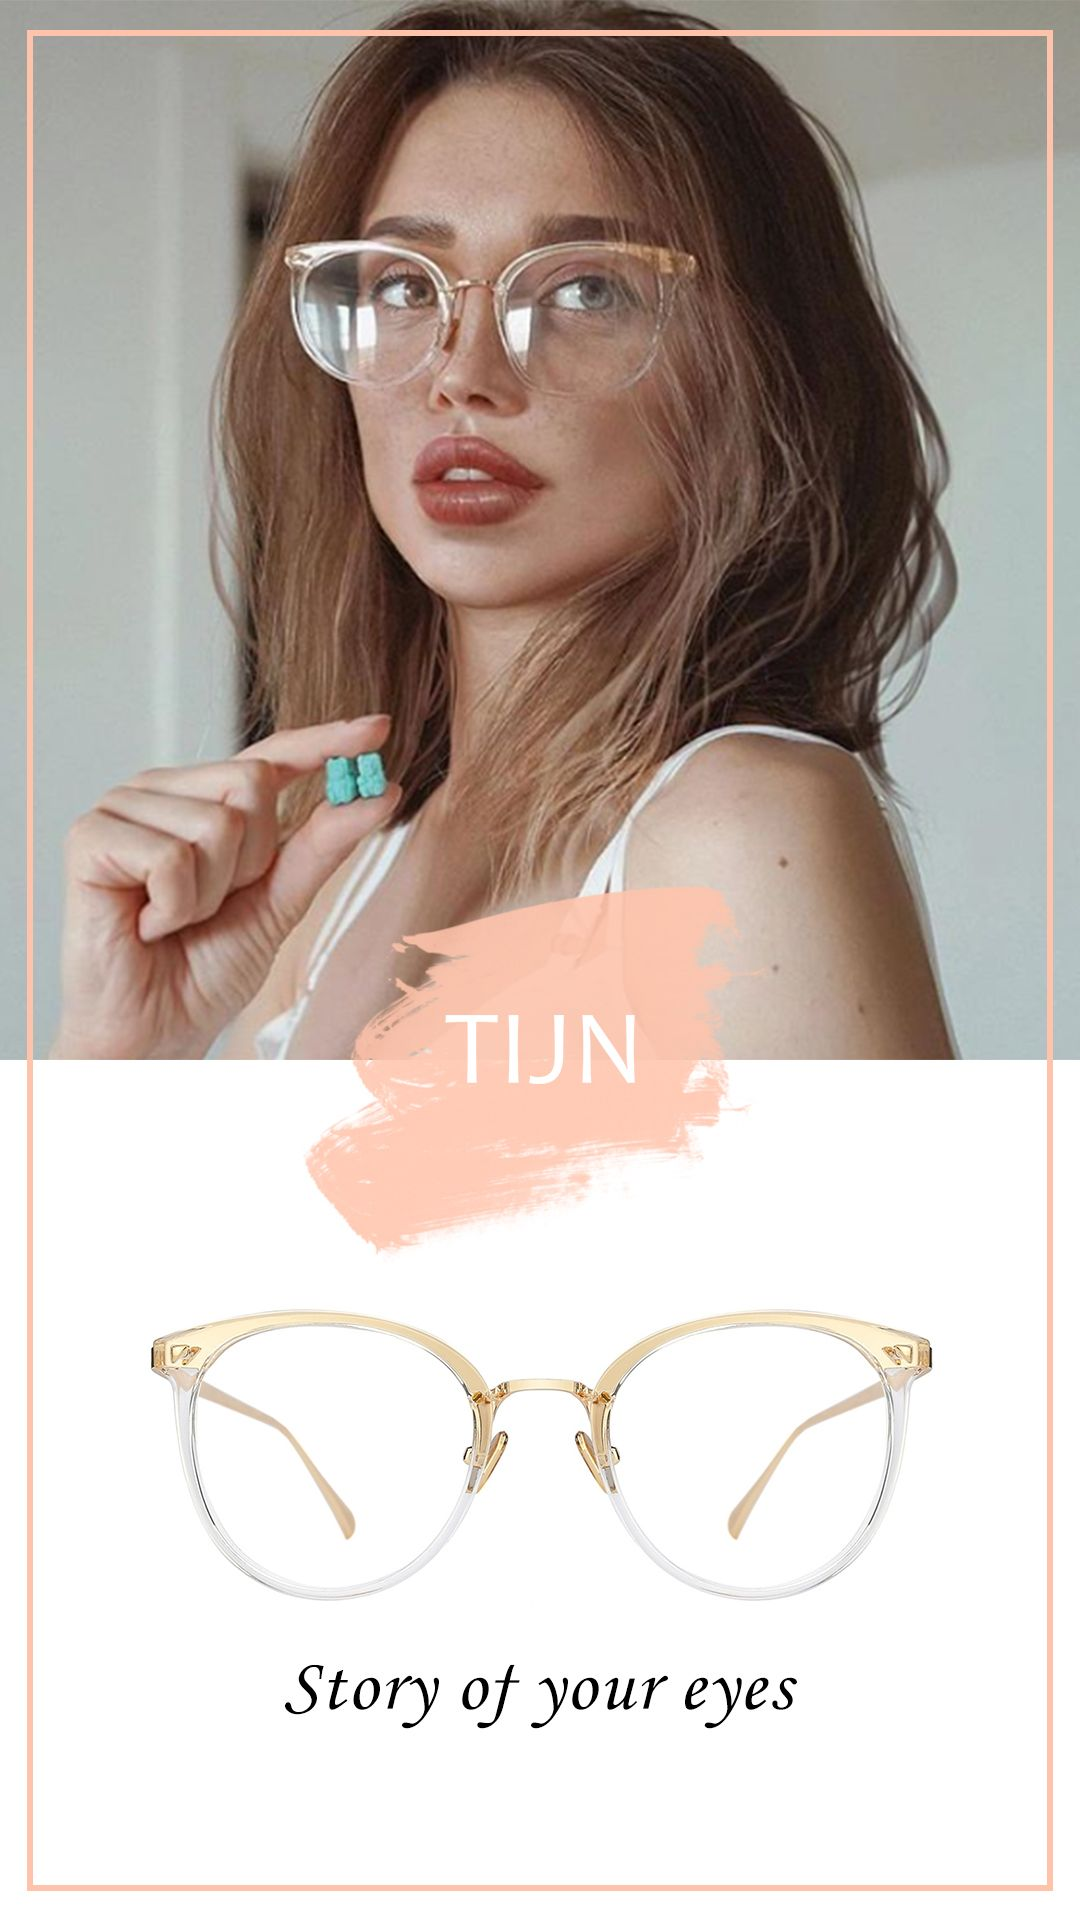 2018 NEW Fashion. You may get a new look.Top sale glasses in 2018.  eyewear   fashion eyewear  sunglasses eye  fashion accessories  fashion trend Red  Bird ... 8971ad3f3d